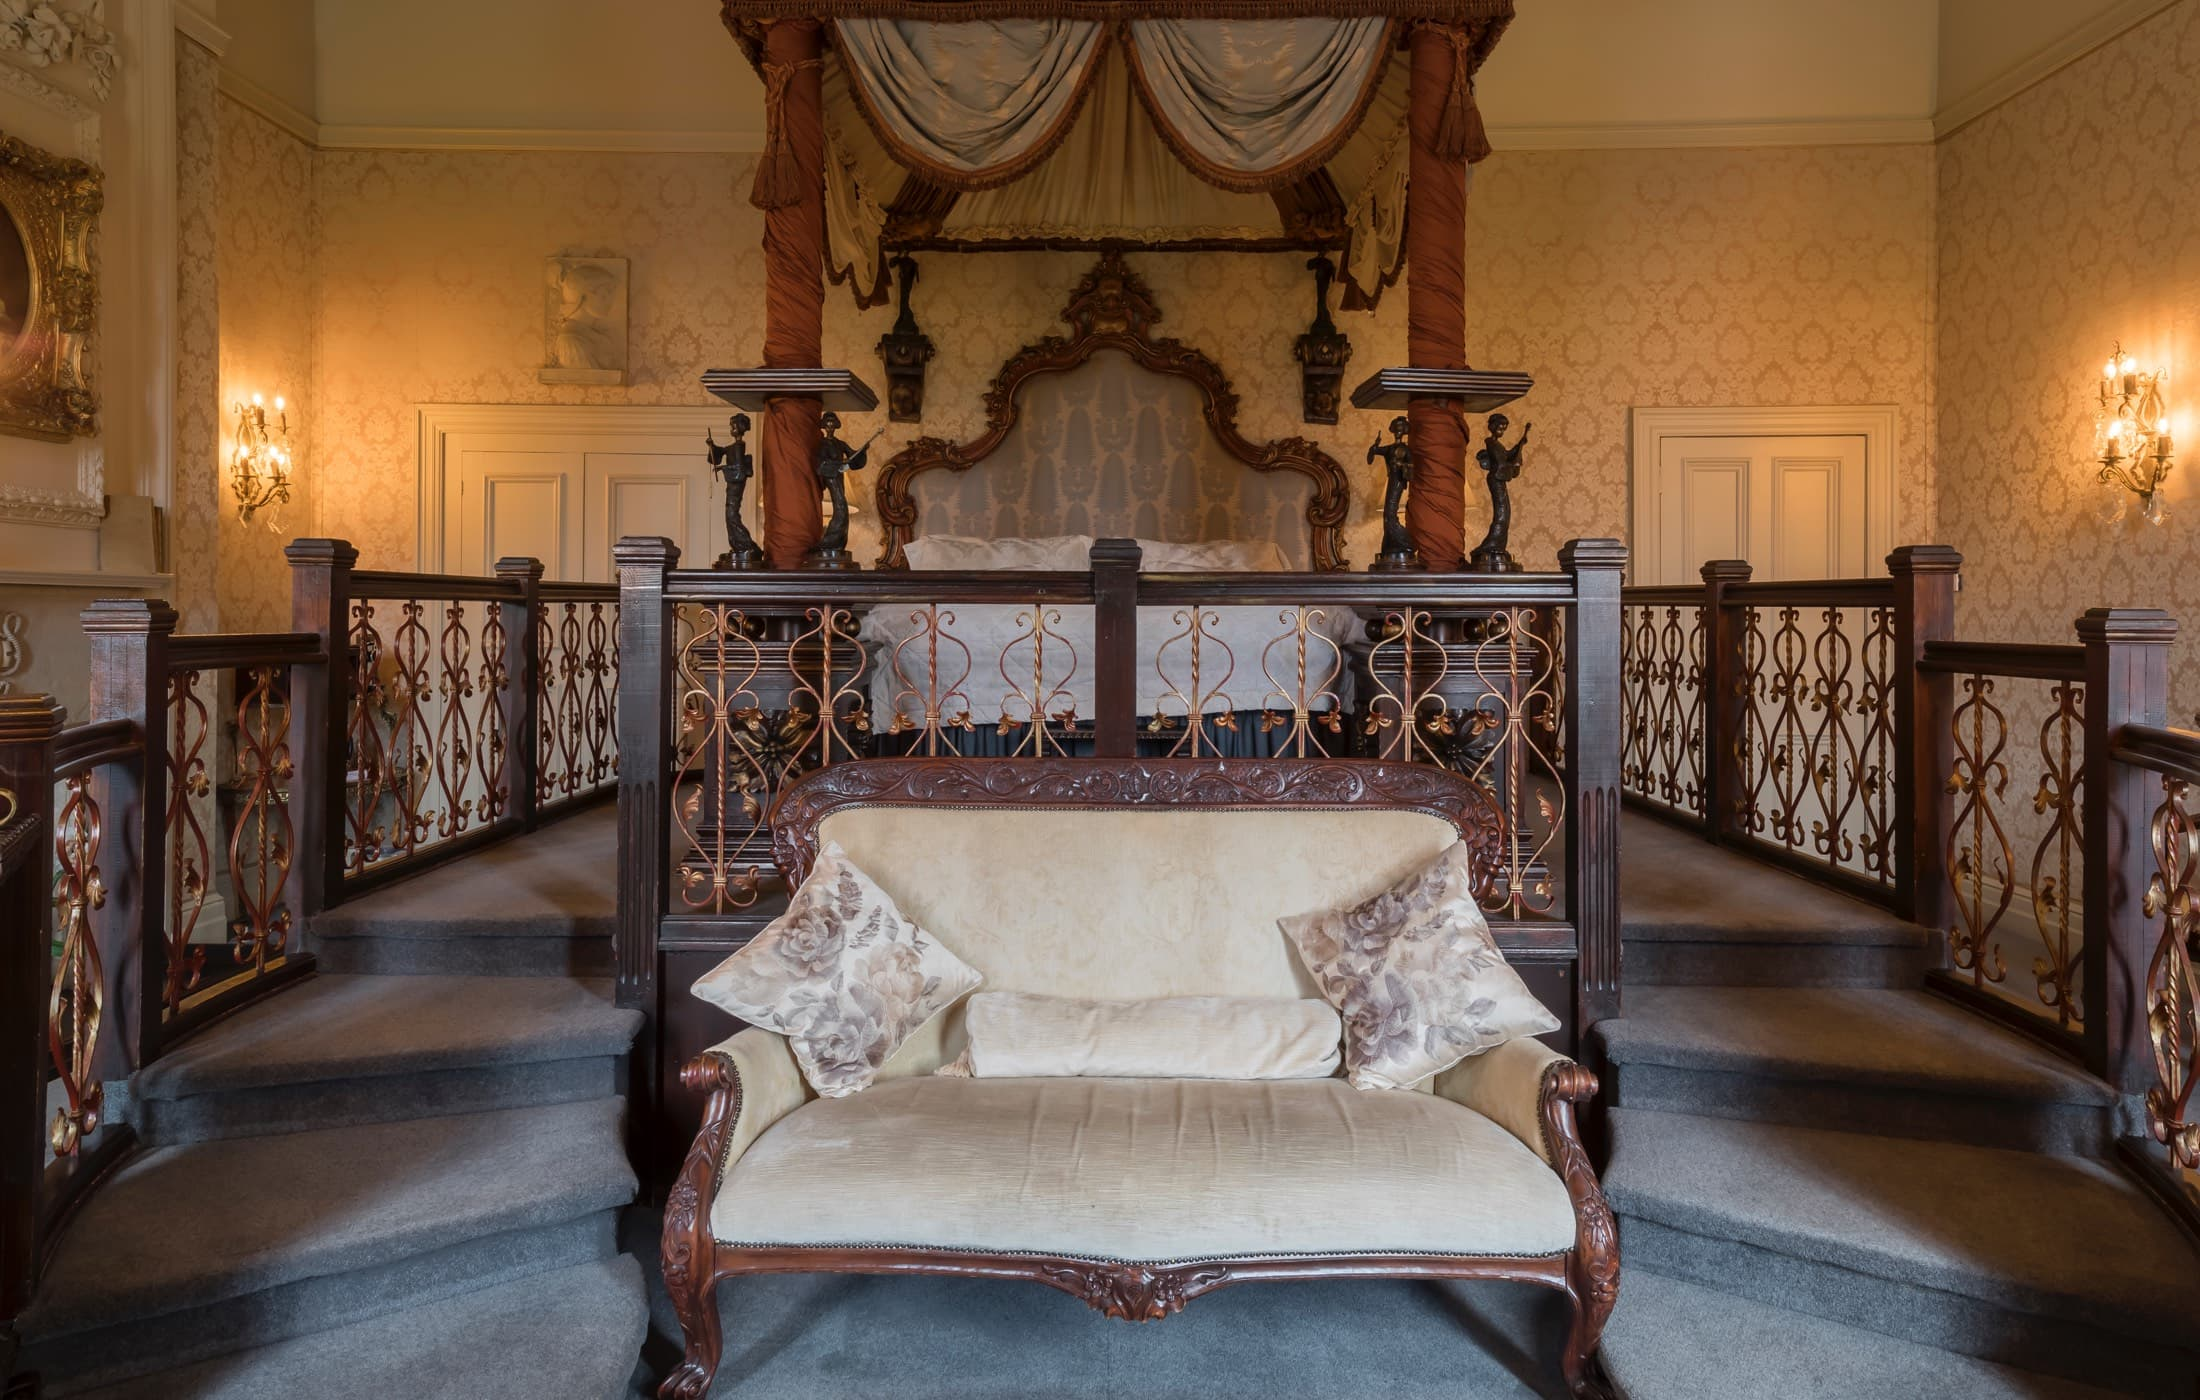 Dinner and hotel package at Coombe Abbey